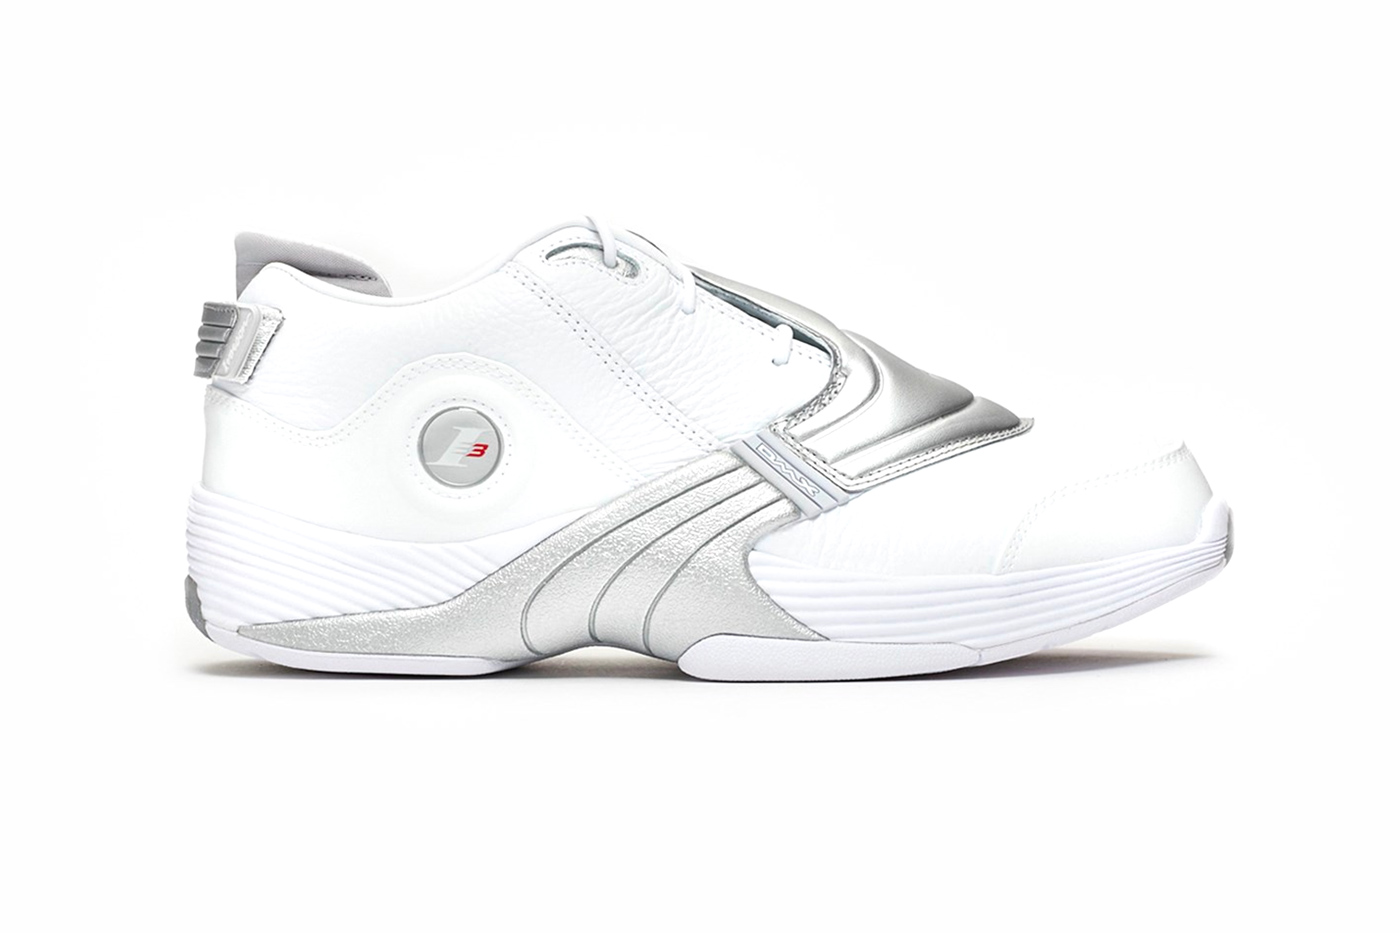 "Reebok Answer V ""White/Matte Silver/Black"" Release Dv6959 sneakernstuff footwear sneakers shoes basketball lifestyle buy now online web store stockist"